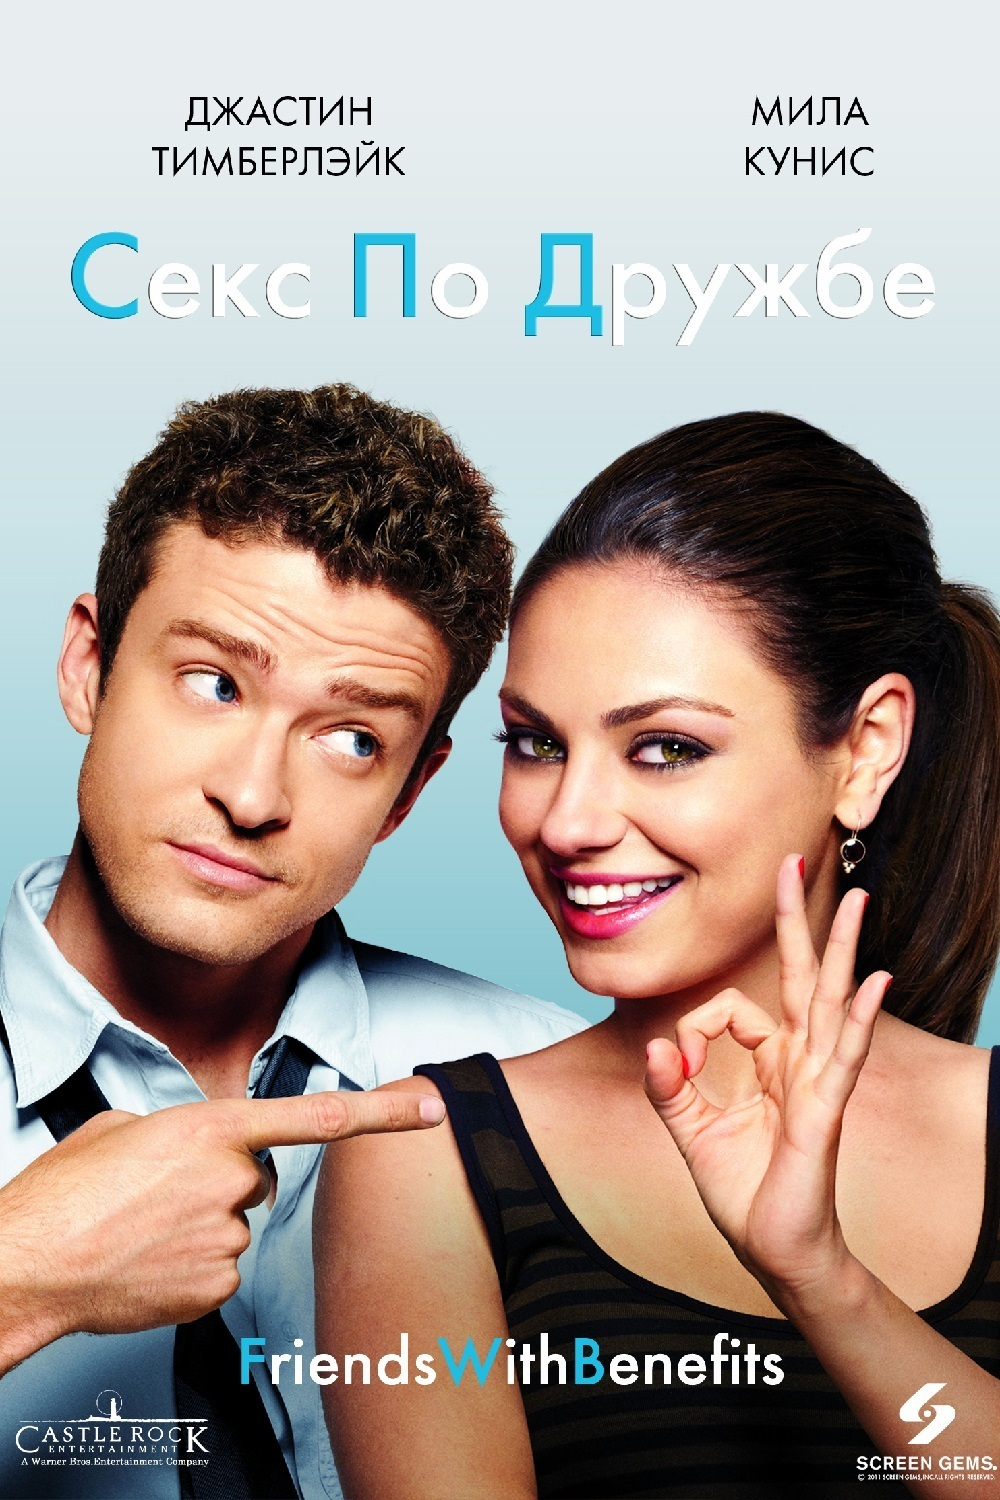 bøsse masaz sex friends with benefits movie